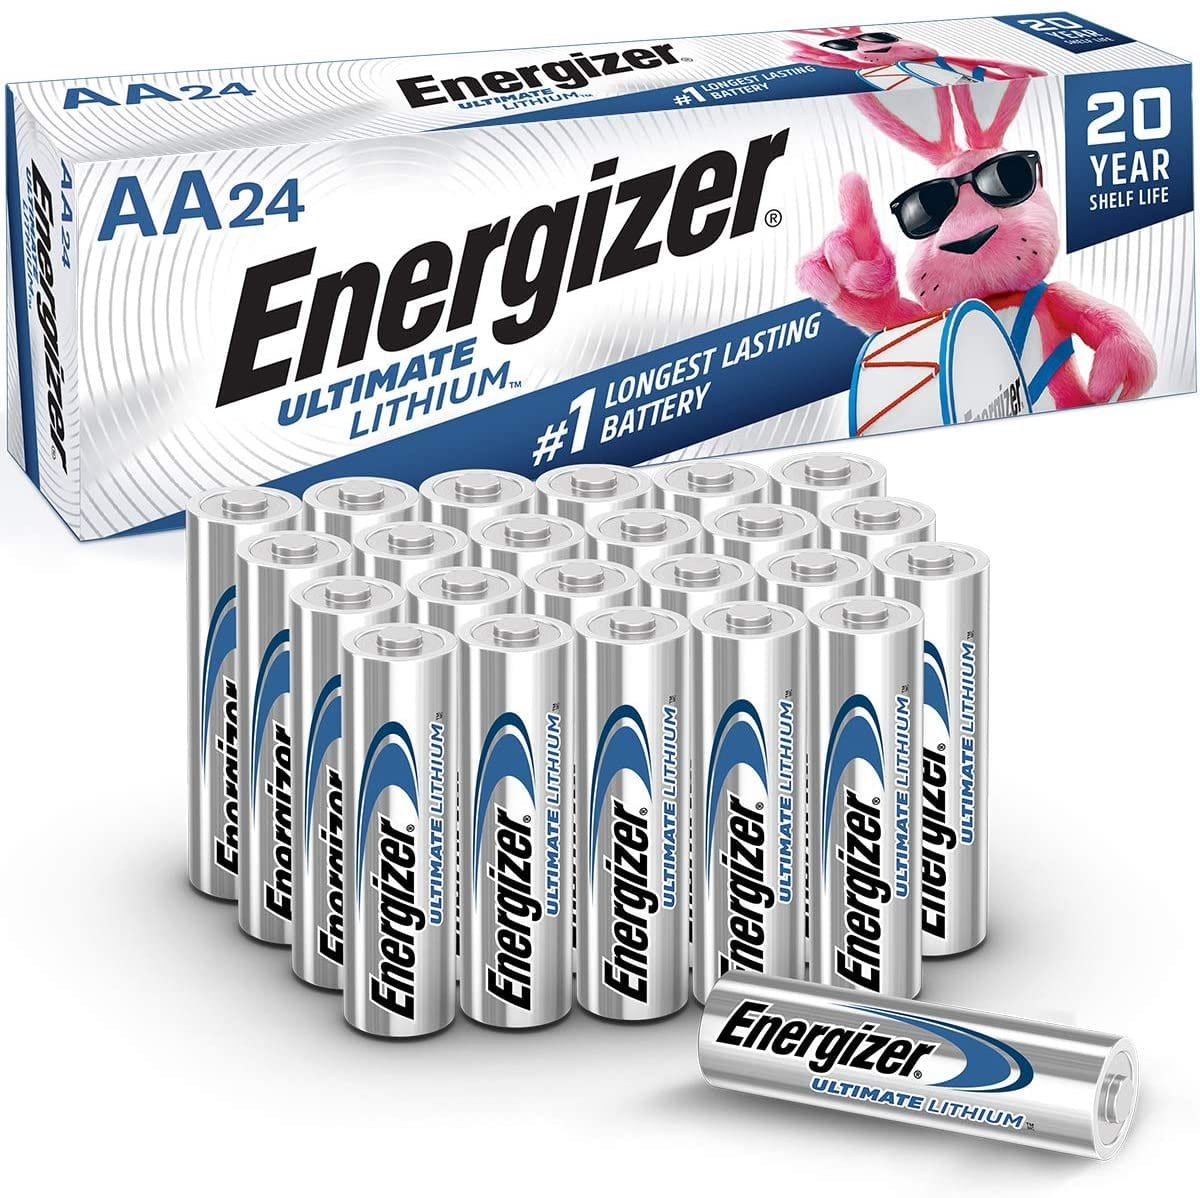 24-Count Energizer Ultimate Lithium AA Batteries $21.67 w/ S&S + Free Shipping